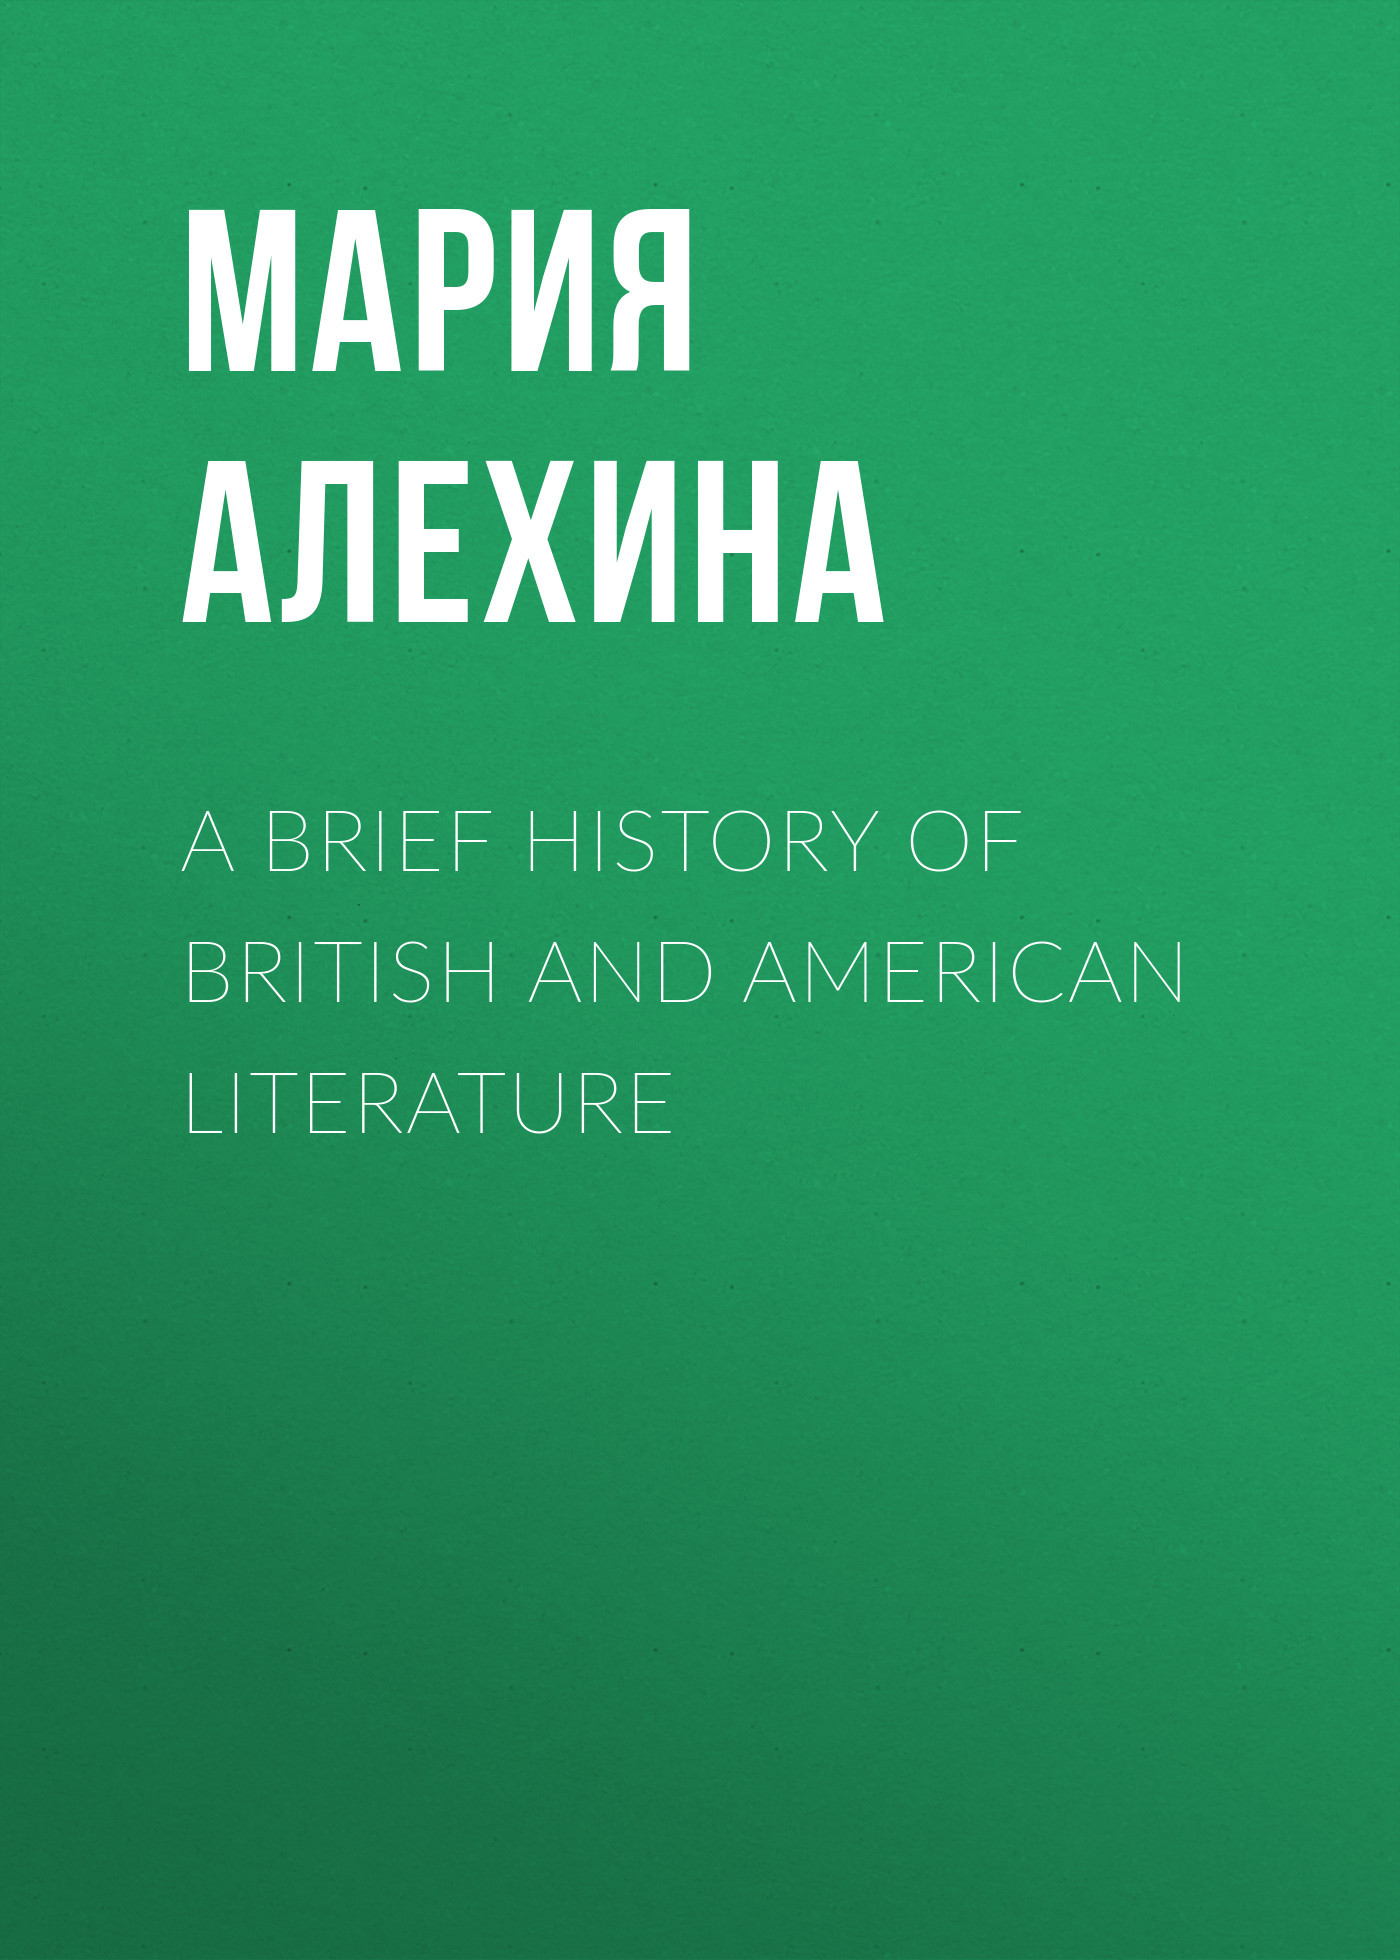 Мария Алехина A Brief History of British and American Literature bryan perrett british military history for dummies